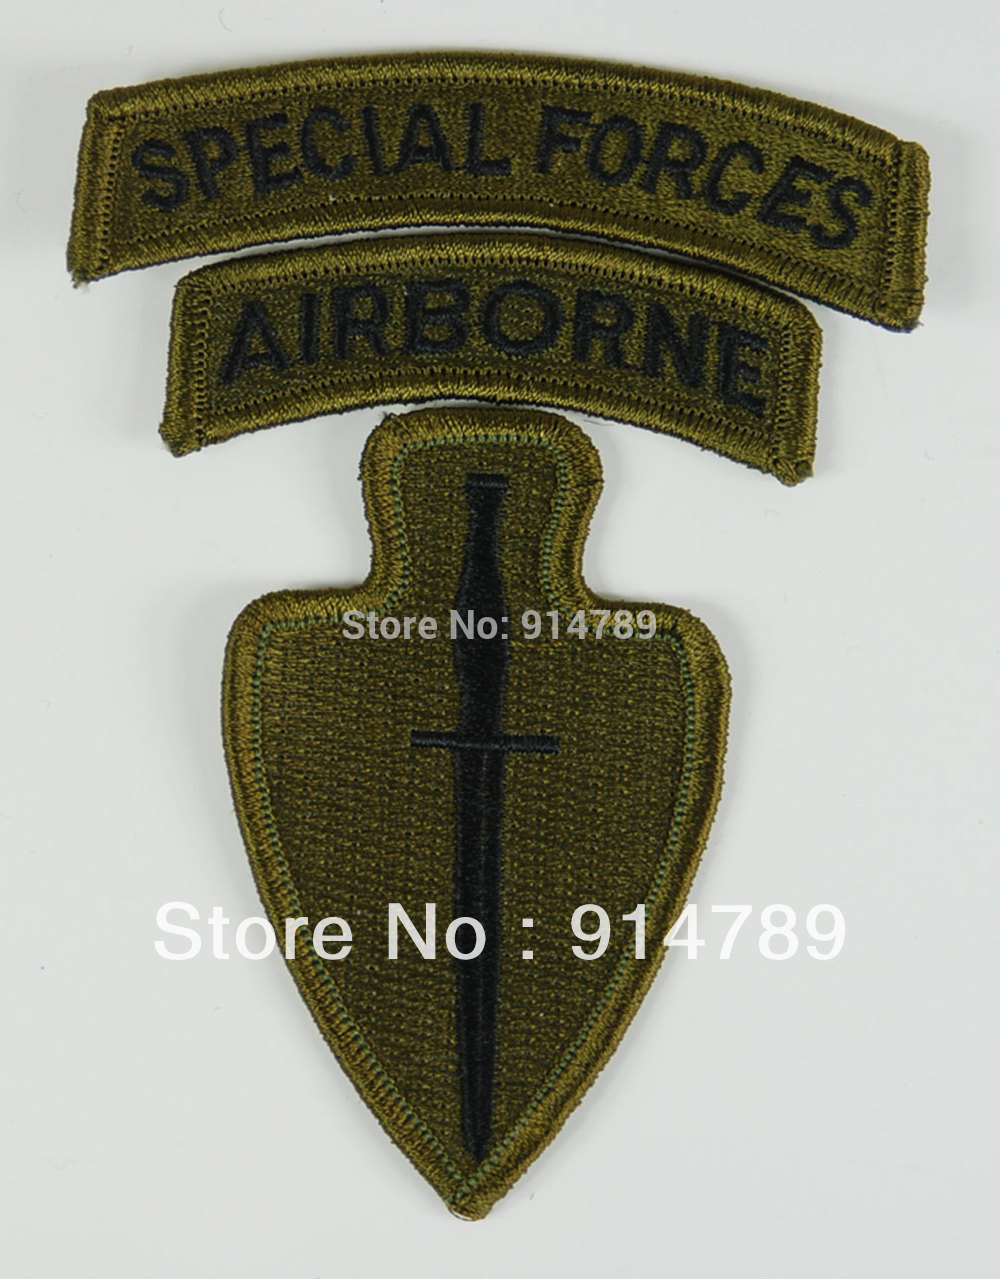 US ARMY SPECIAL OPERATIONS COMMAND AIRBORNE ARMBAND PATCH-32655